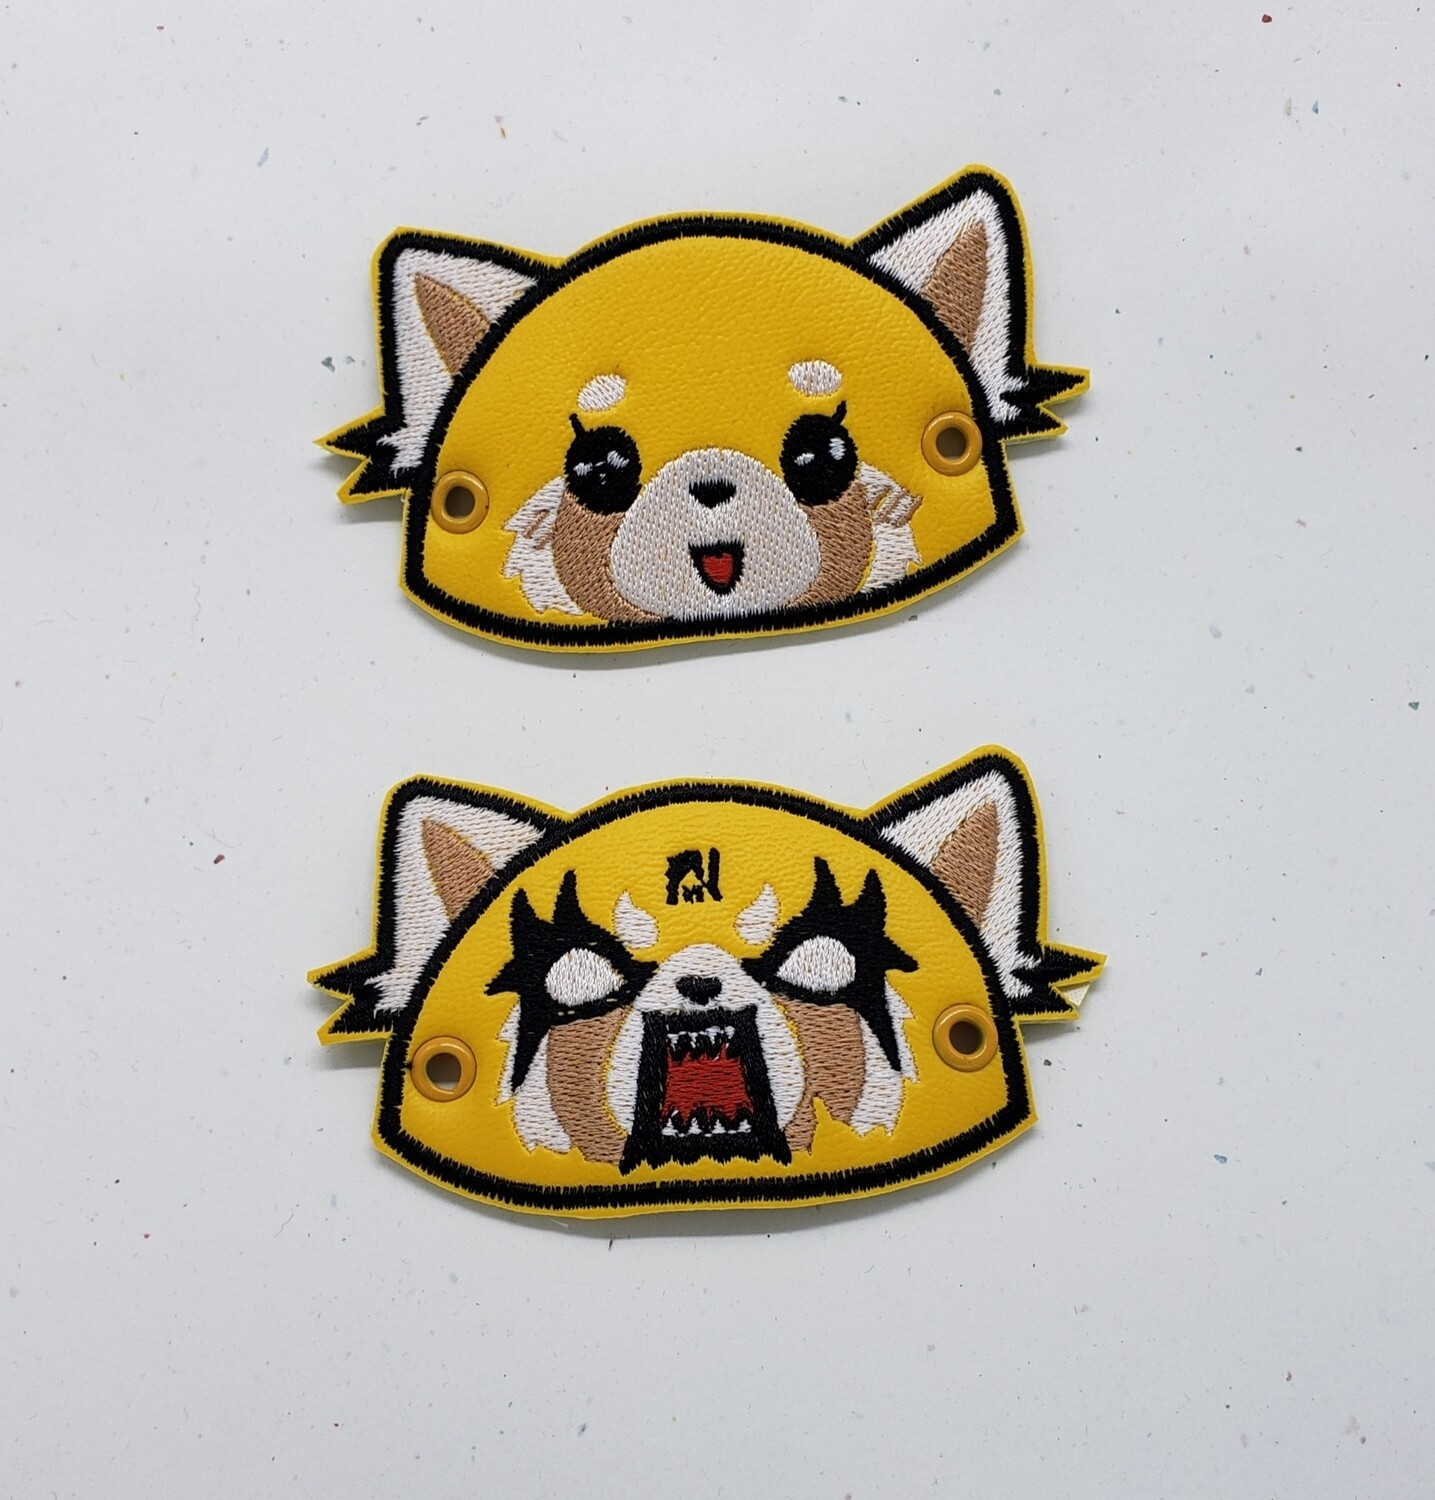 Aggretsuko (angry and cute ) lace accessories